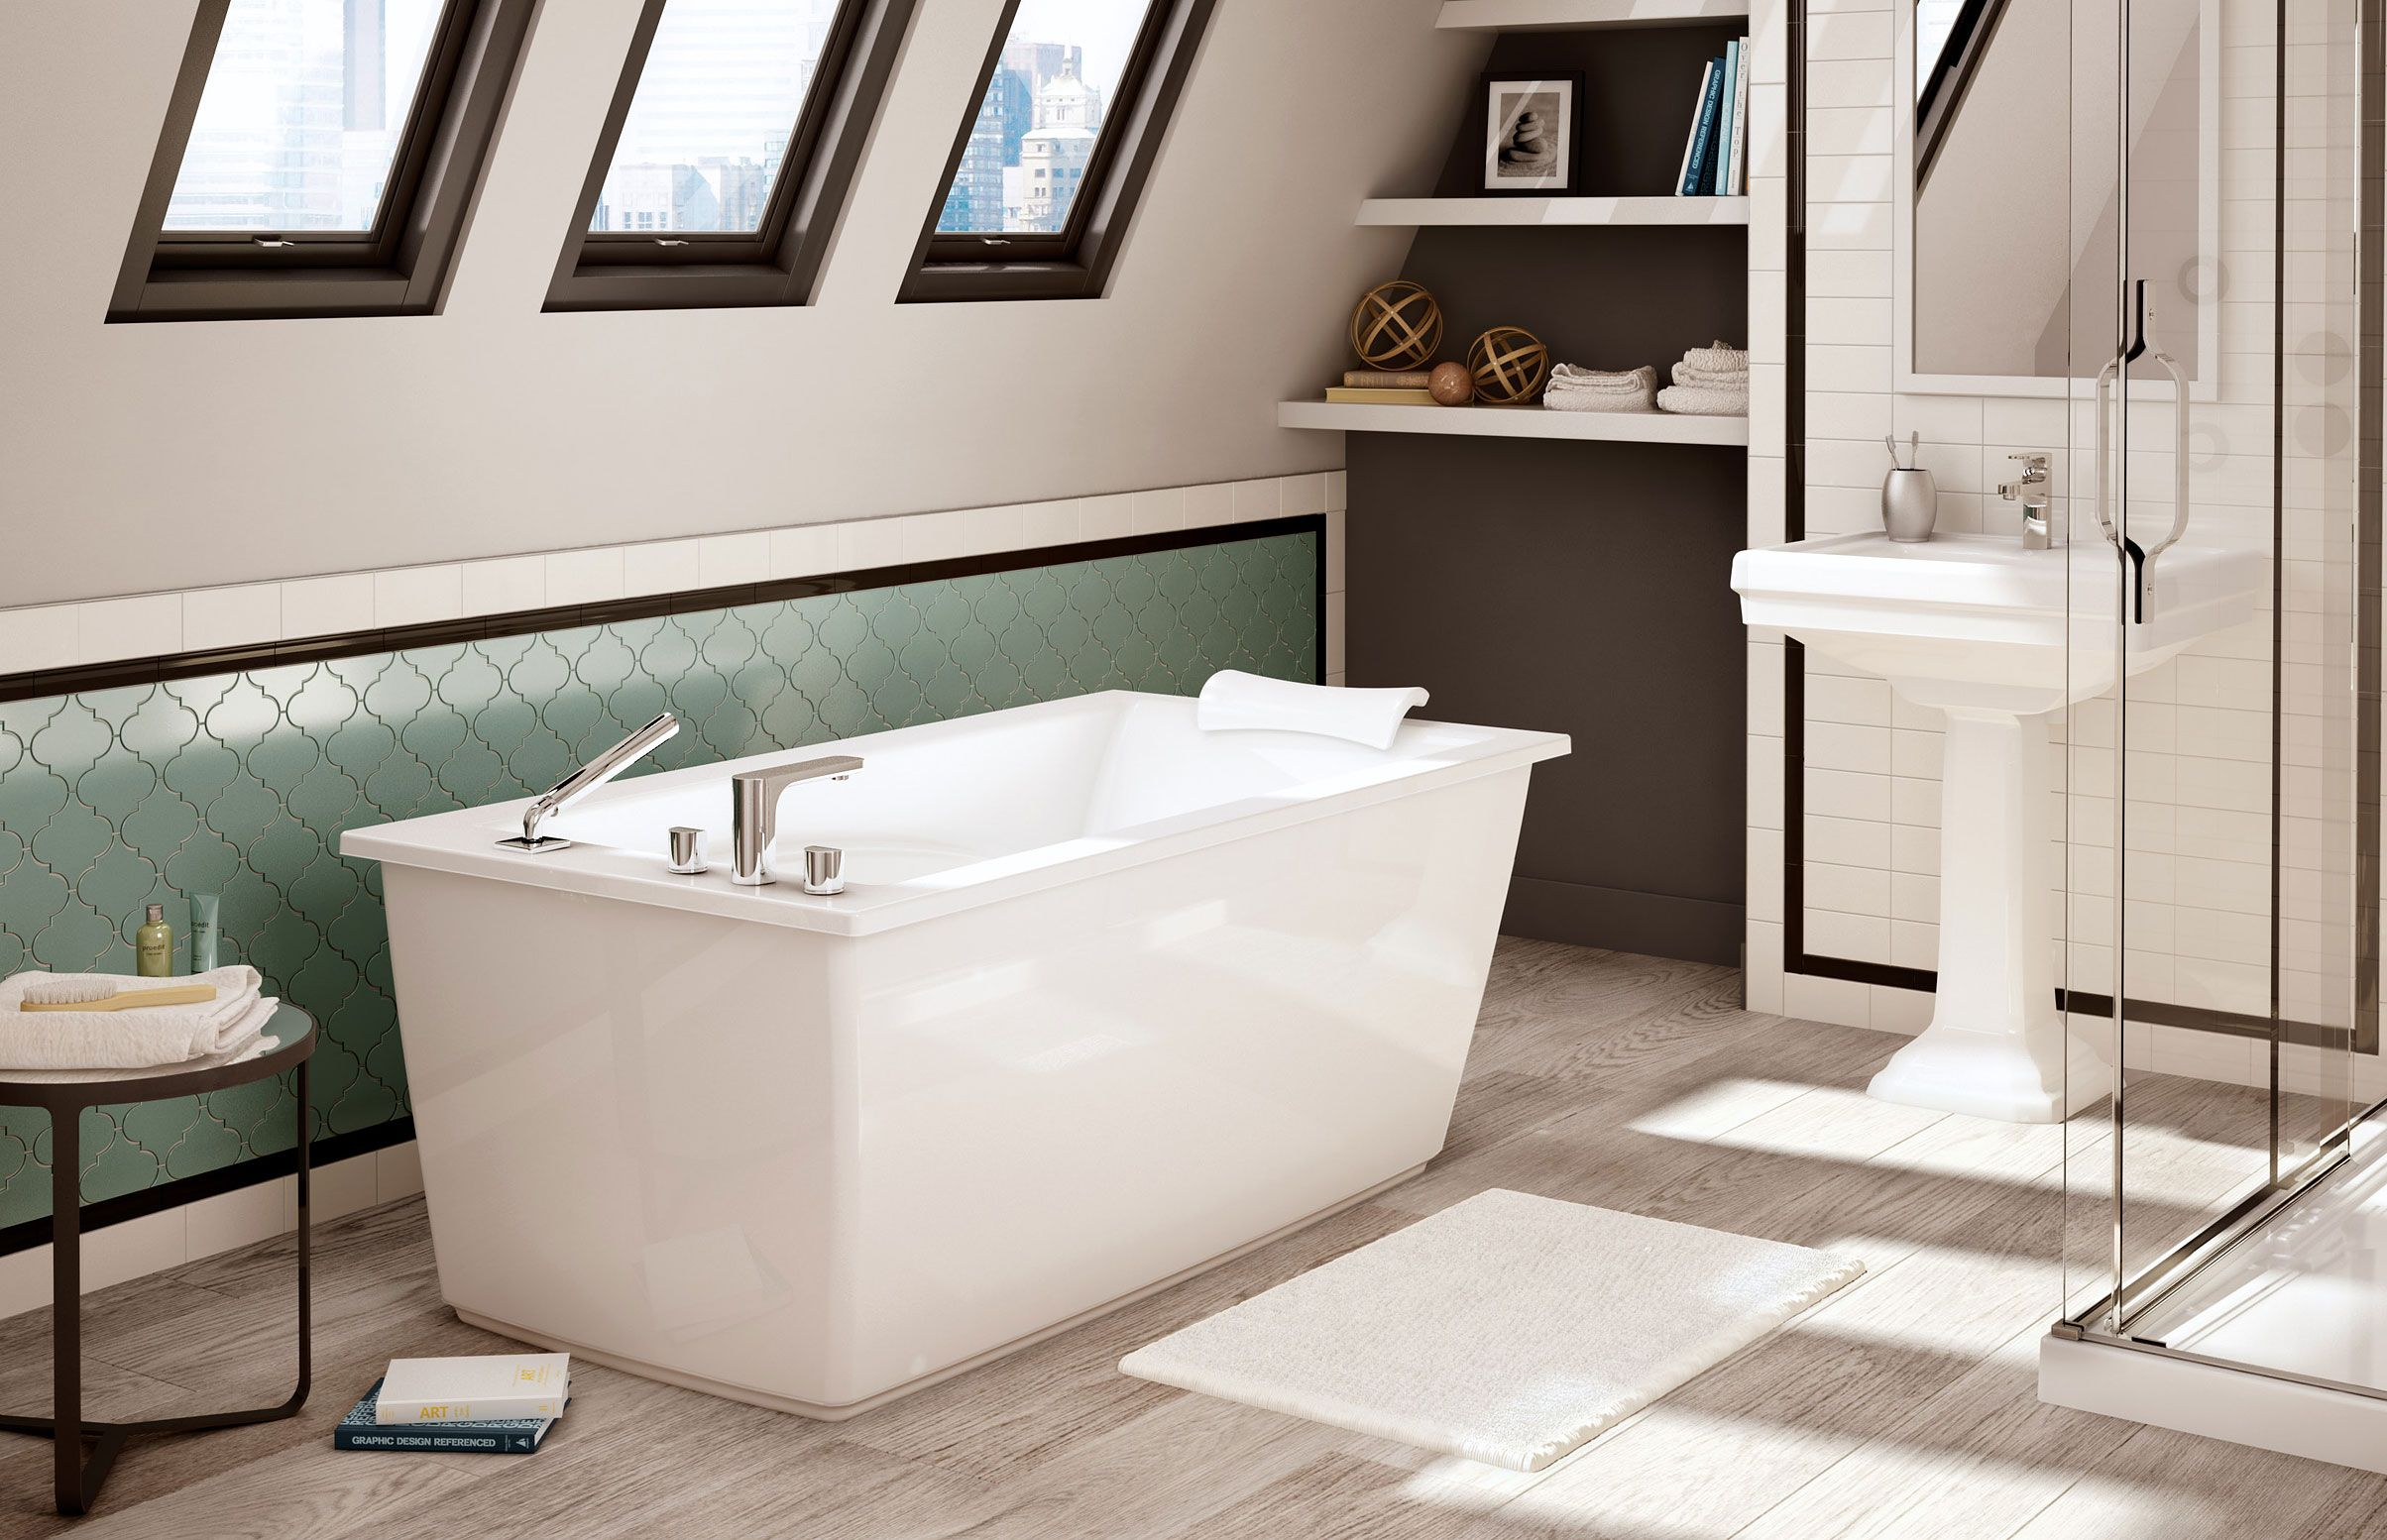 60 freestanding soaking tub. OPTIK 6032 F  Freestanding bathtub MAAX Collection 105571 Dimensions